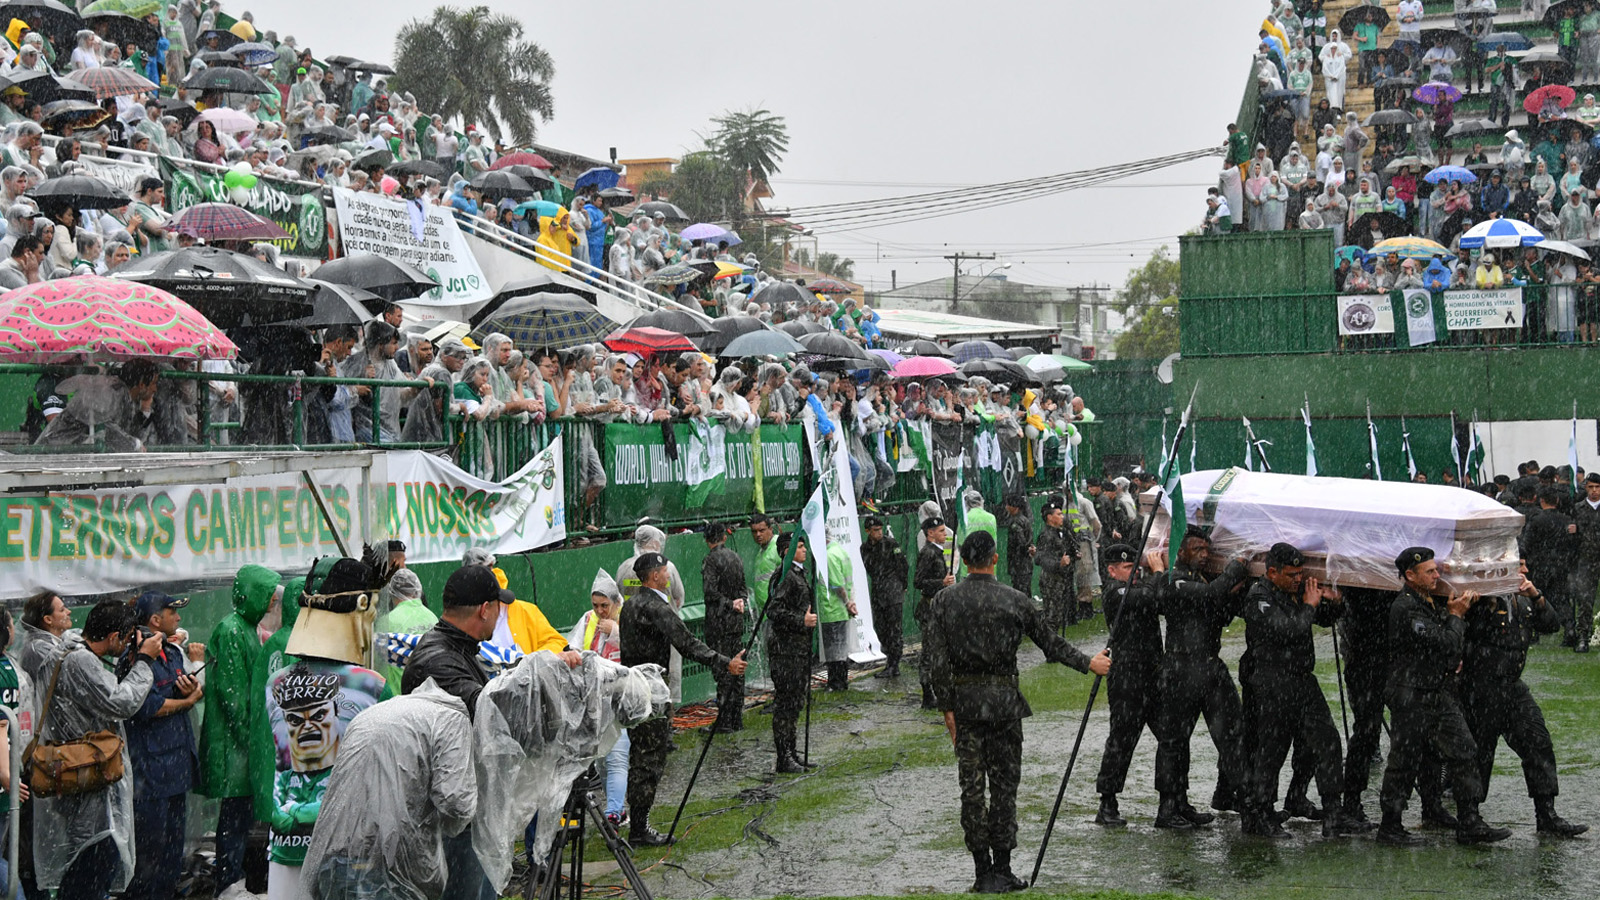 Soldiers carry into the stadium under heavy rain the coffins of the members of the Chapecoense Real football club team killed in a plane crash in Colombia, in  Chapeco, Santa Catarina, southern Brazil, on December 3, 2016.  The bodies of 50 players, coaches and staff from a Brazilian football team tragically wiped out in a plane crash in Colombia arrived home Saturday for a massive funeral. / AFP / Nelson Almeida        (Photo credit should read NELSON ALMEIDA/AFP/Getty Images)